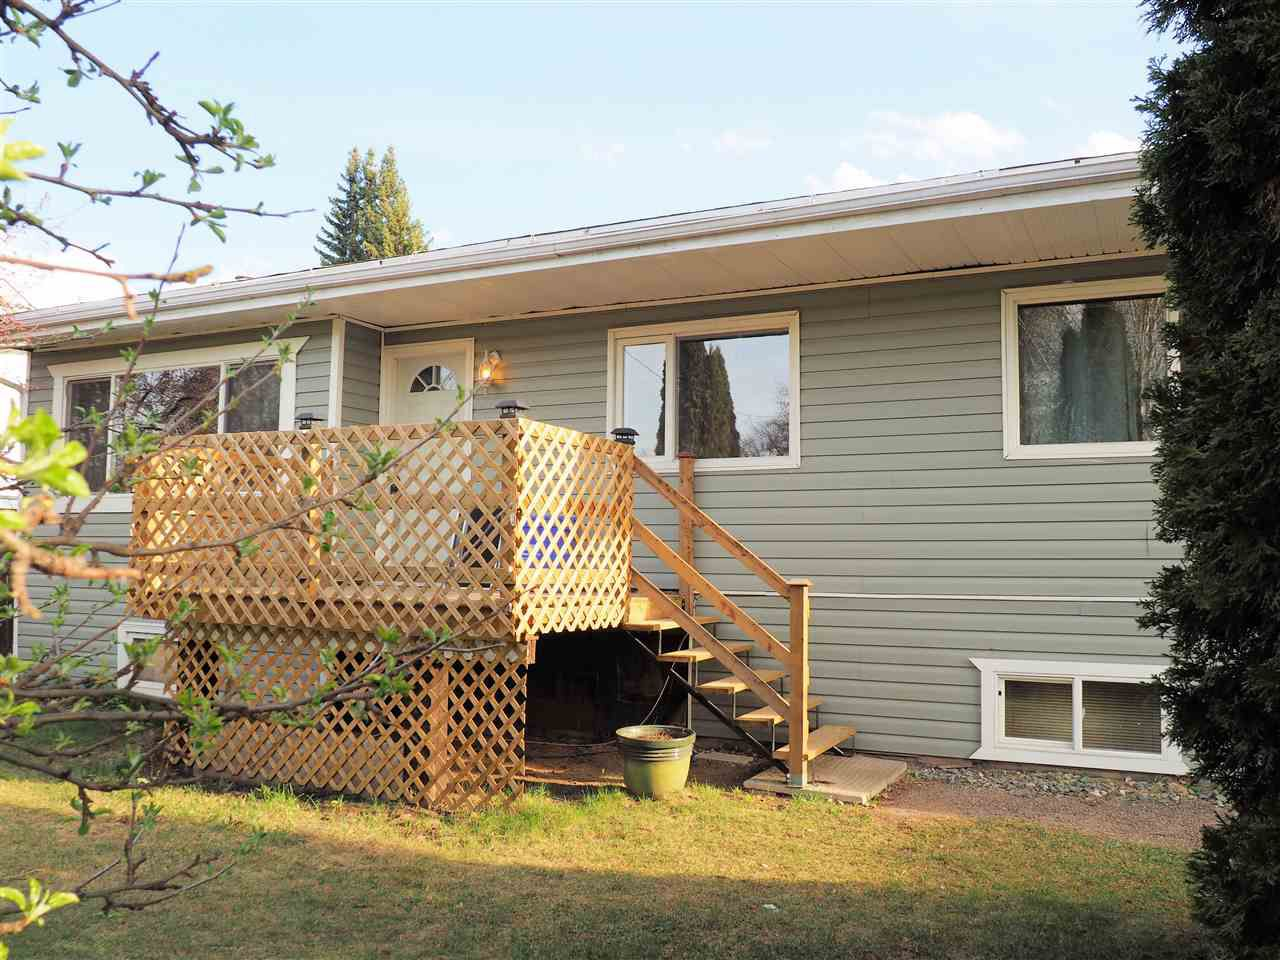 Main Photo: 2715 VANCE Road in Prince George: Peden Hill House for sale (PG City West (Zone 71))  : MLS®# R2102718